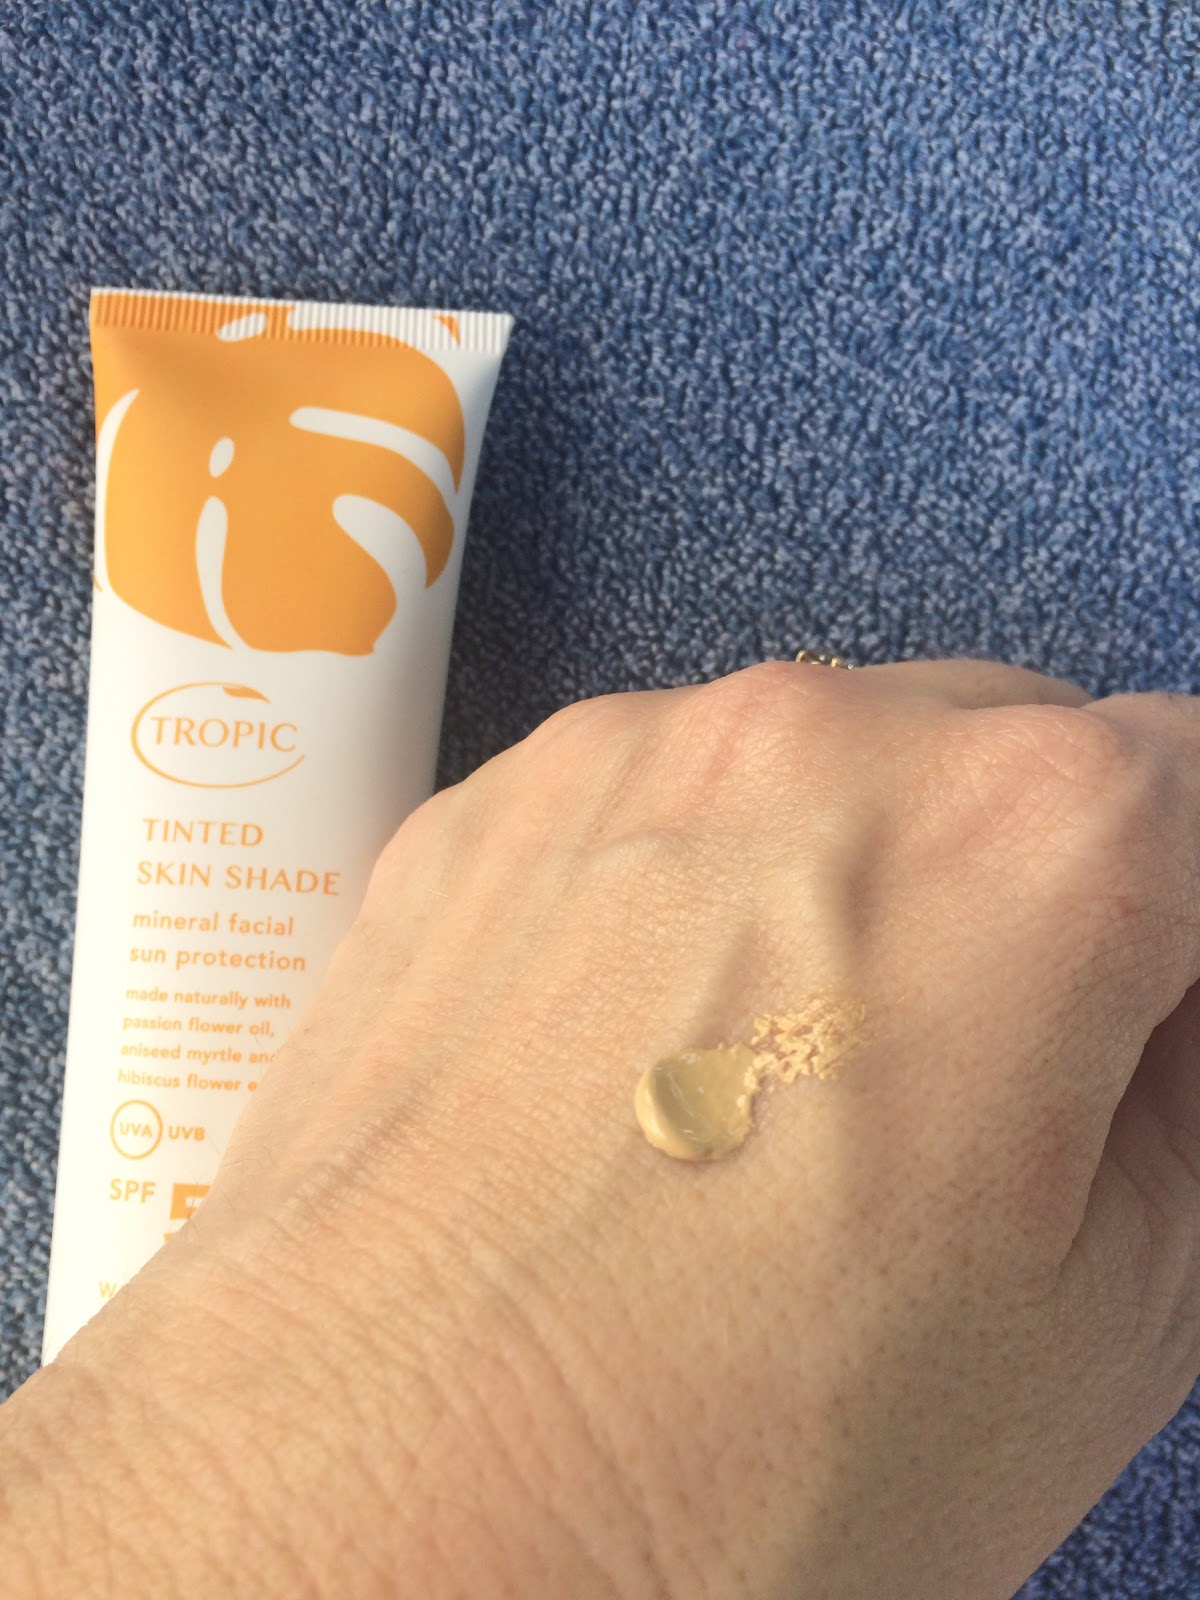 Tropic Skin Care Tinted Skin Shade on hand